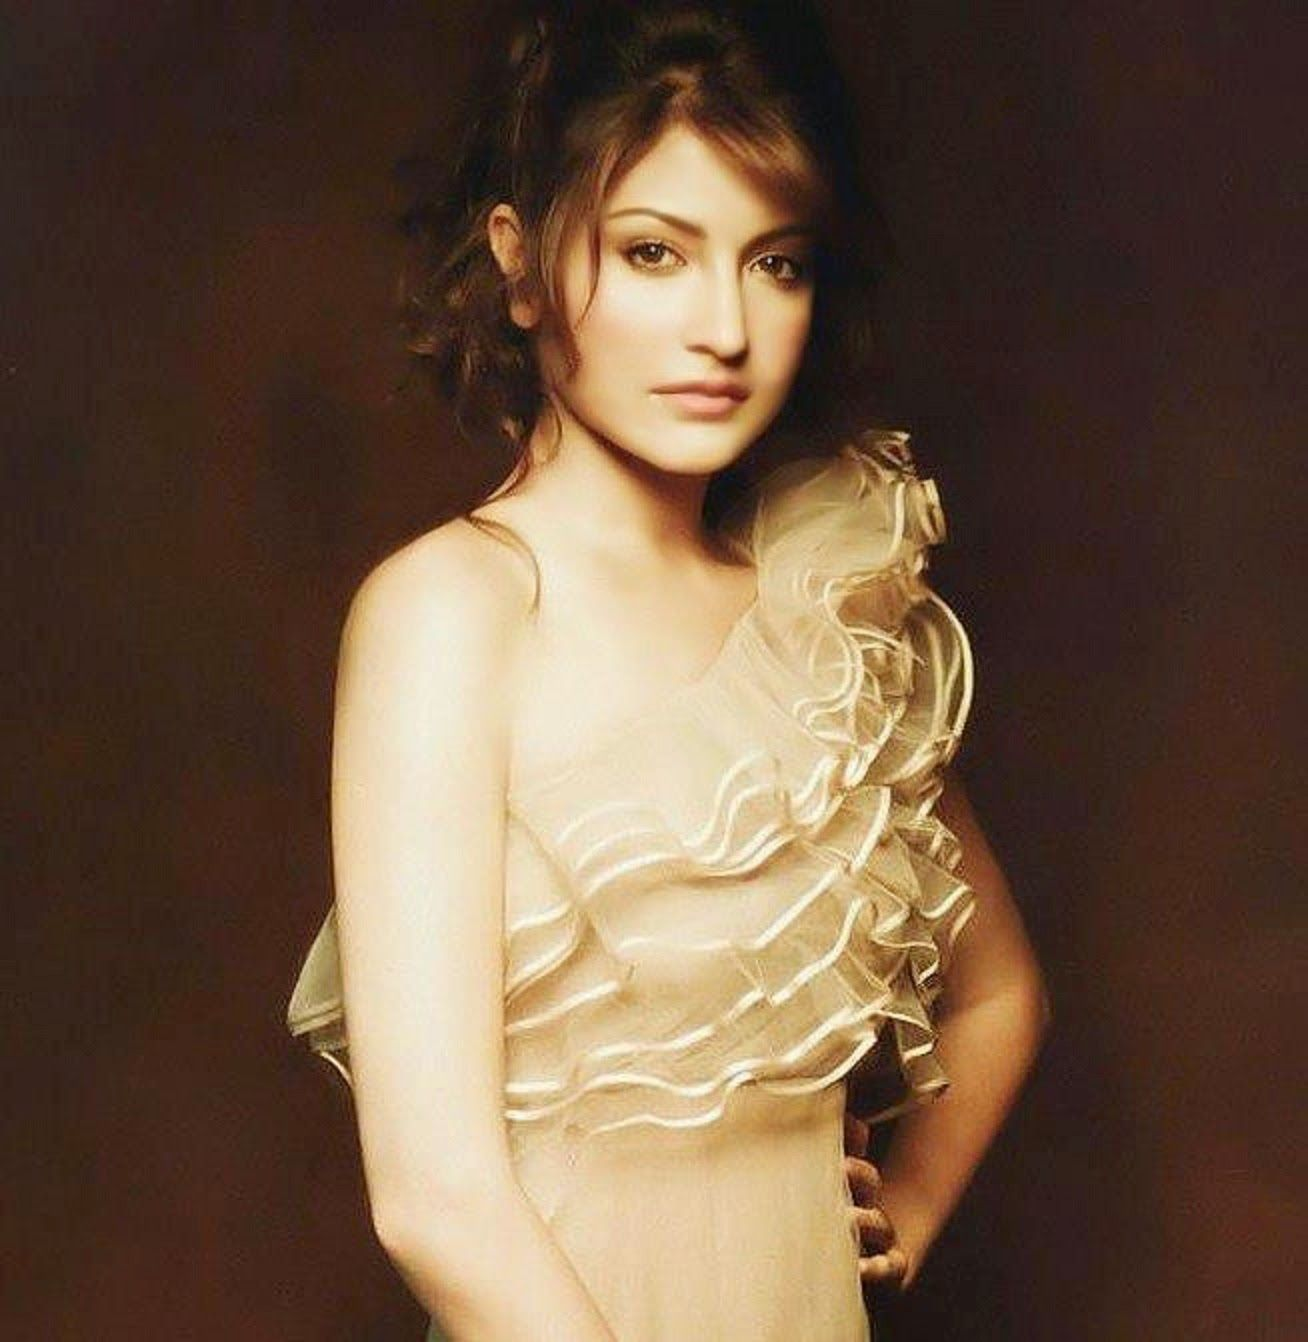 anushka sharma hd wallpapers free download | anushka sharma